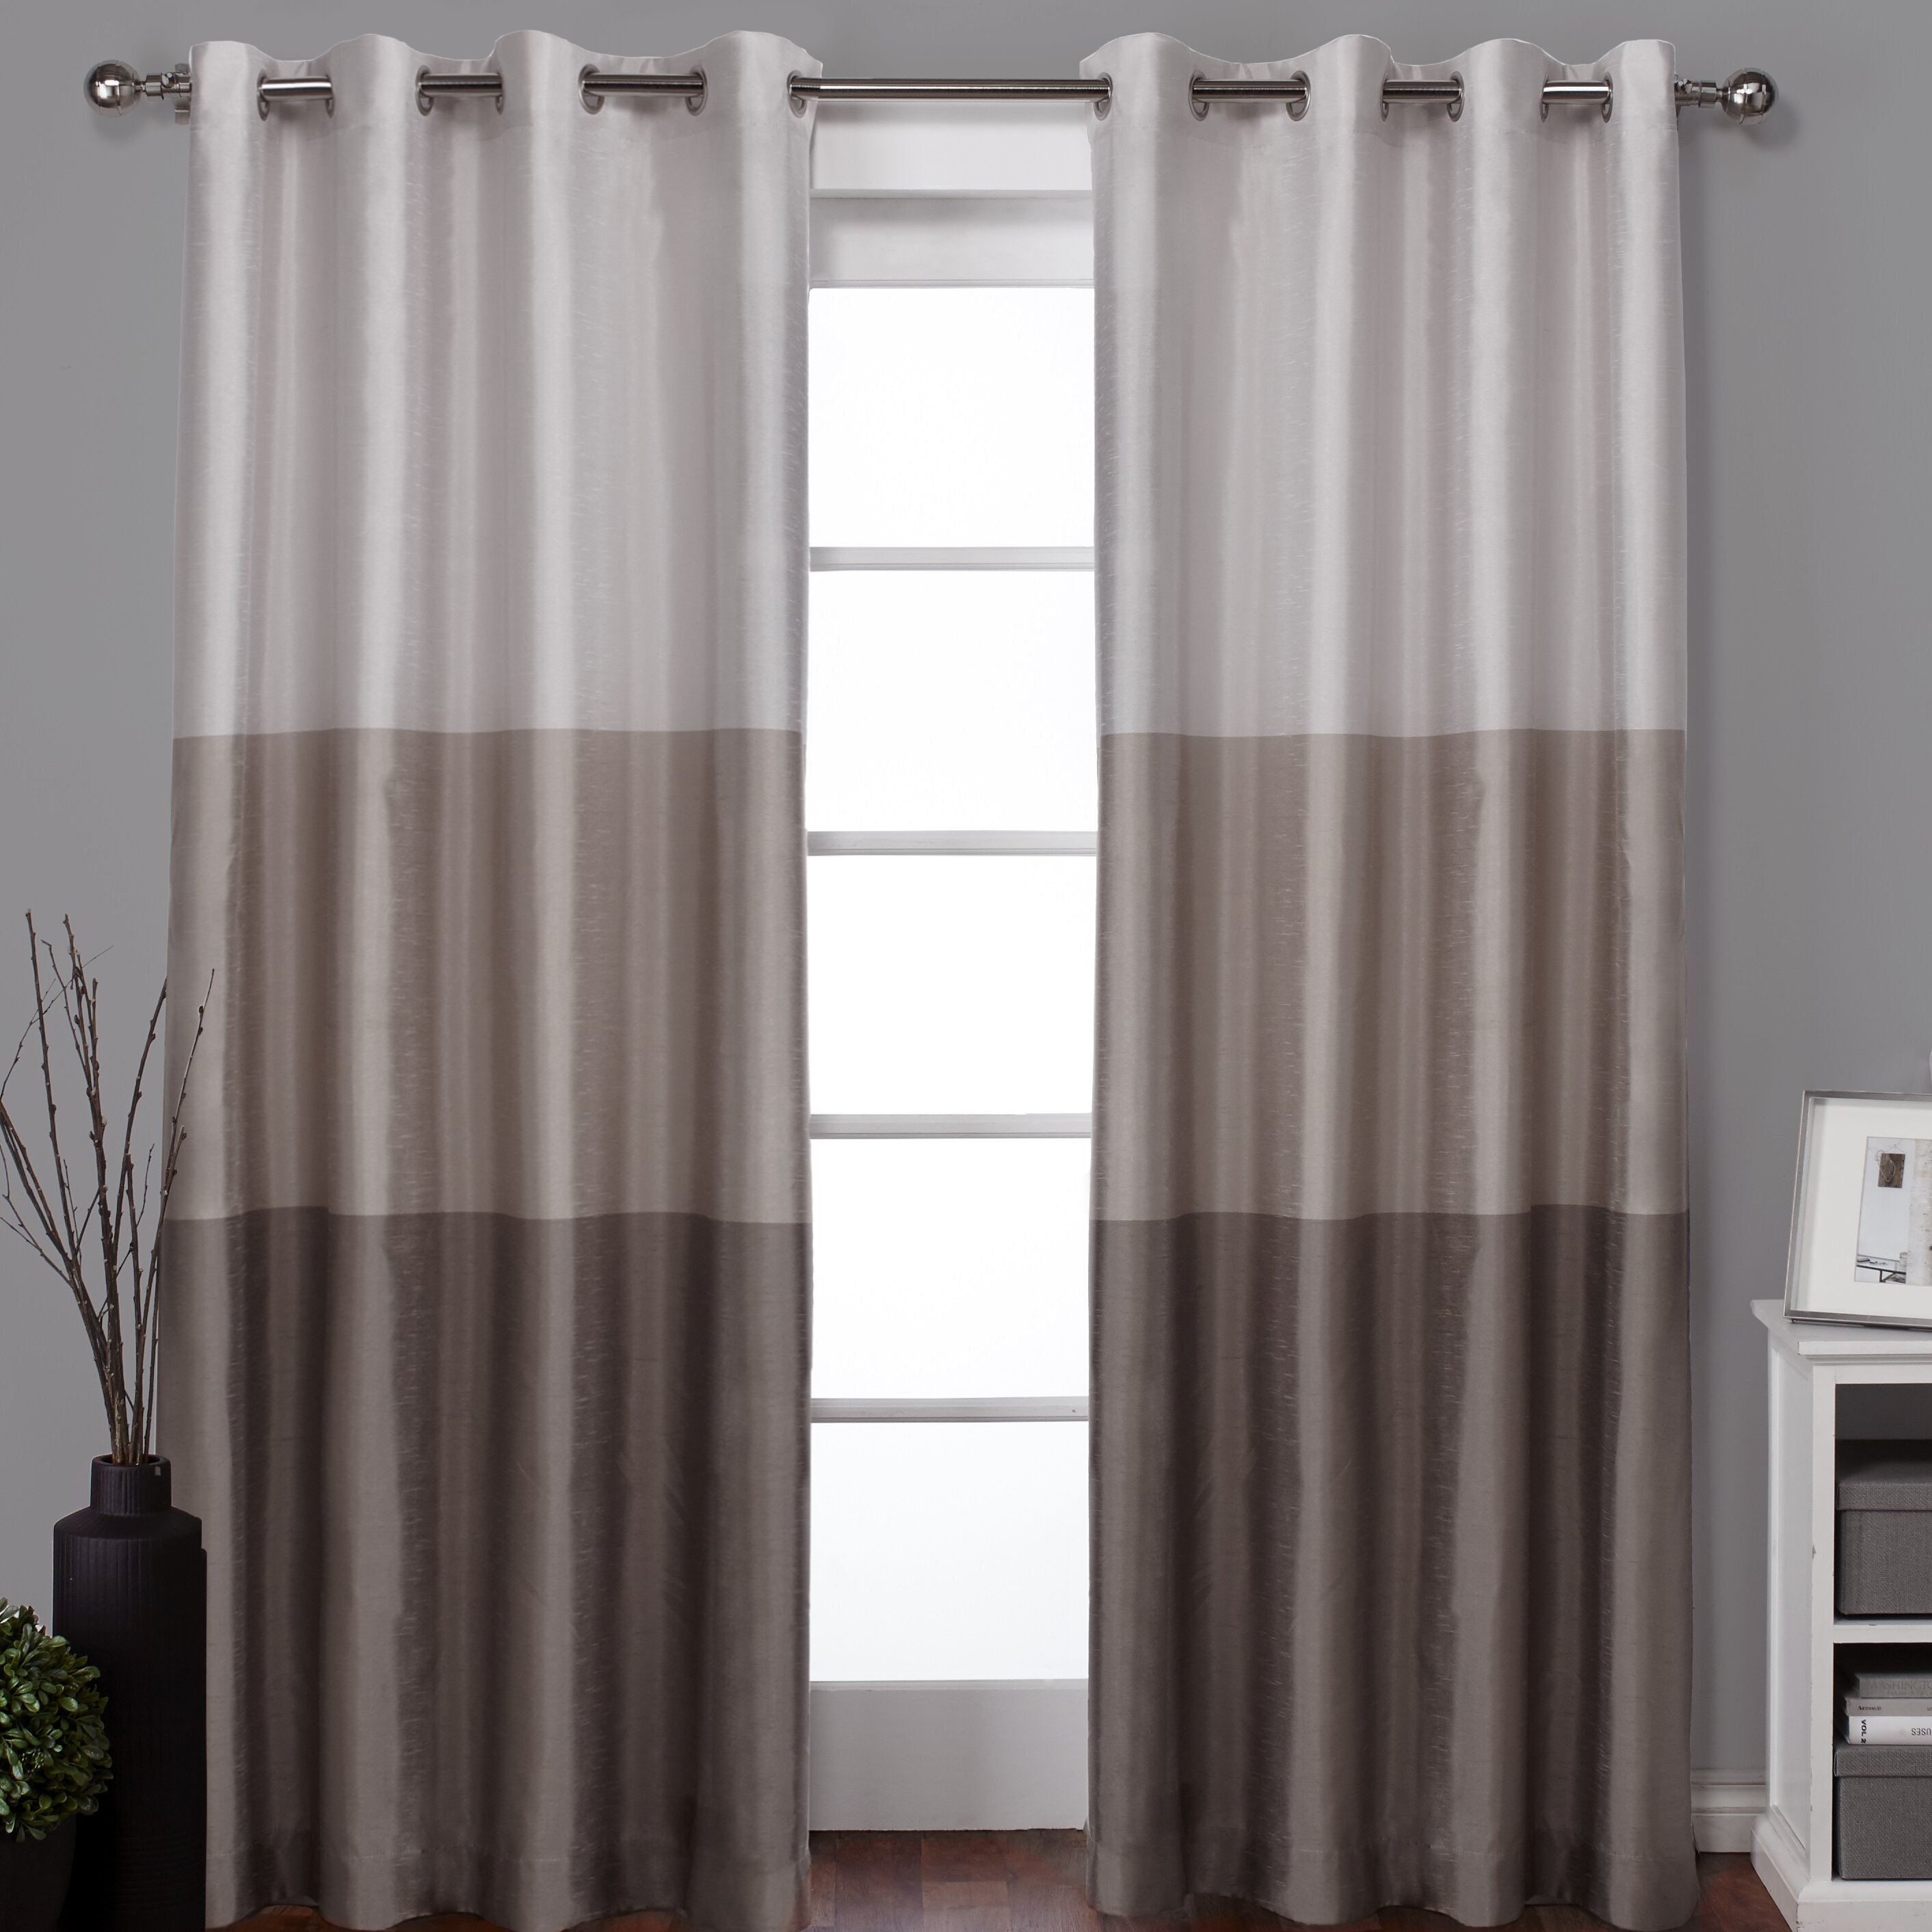 Panel Curtains Canada French Door. Second-sun.co